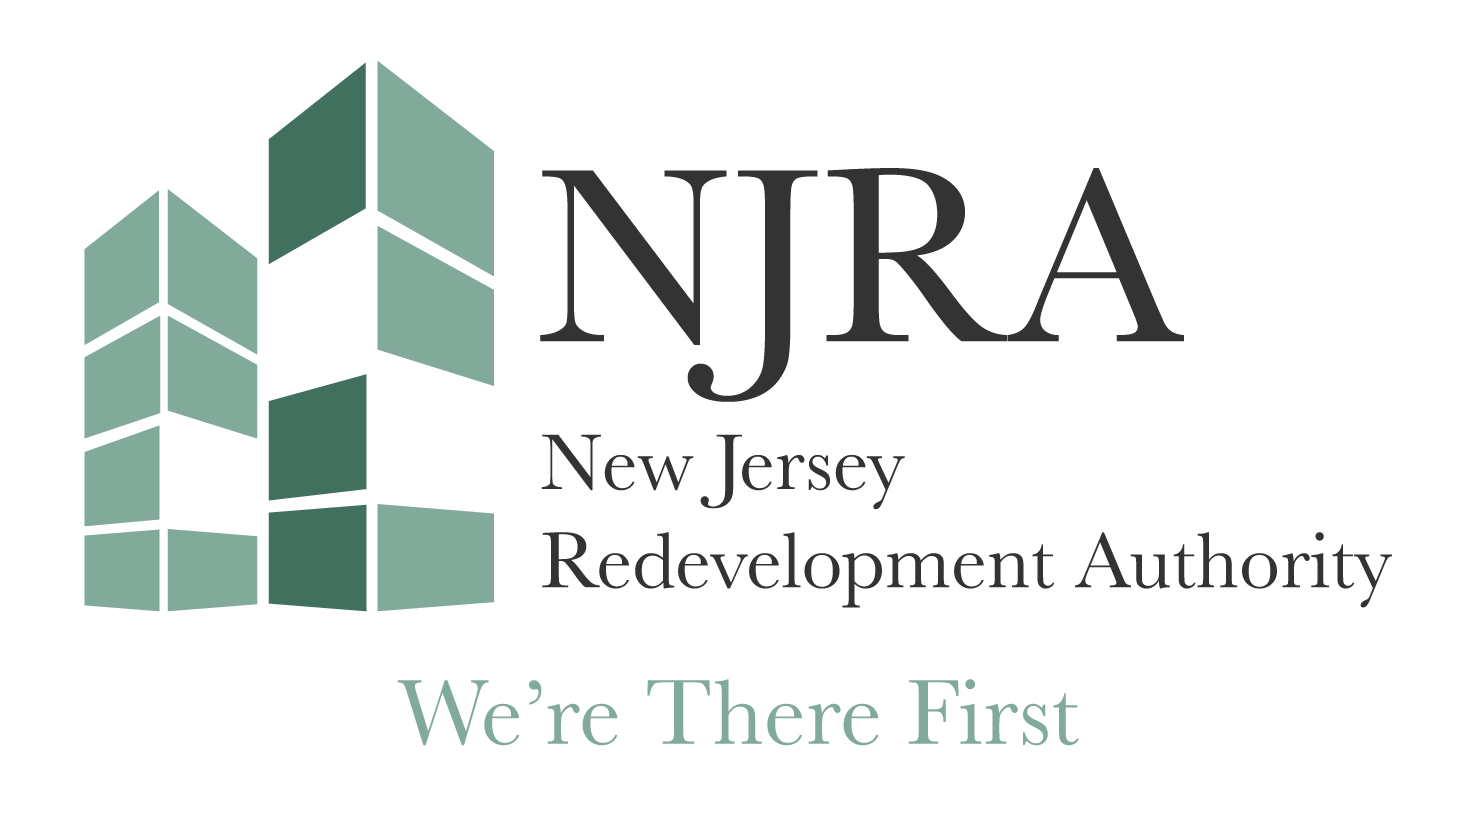 News Jersey Redevelopment Authority